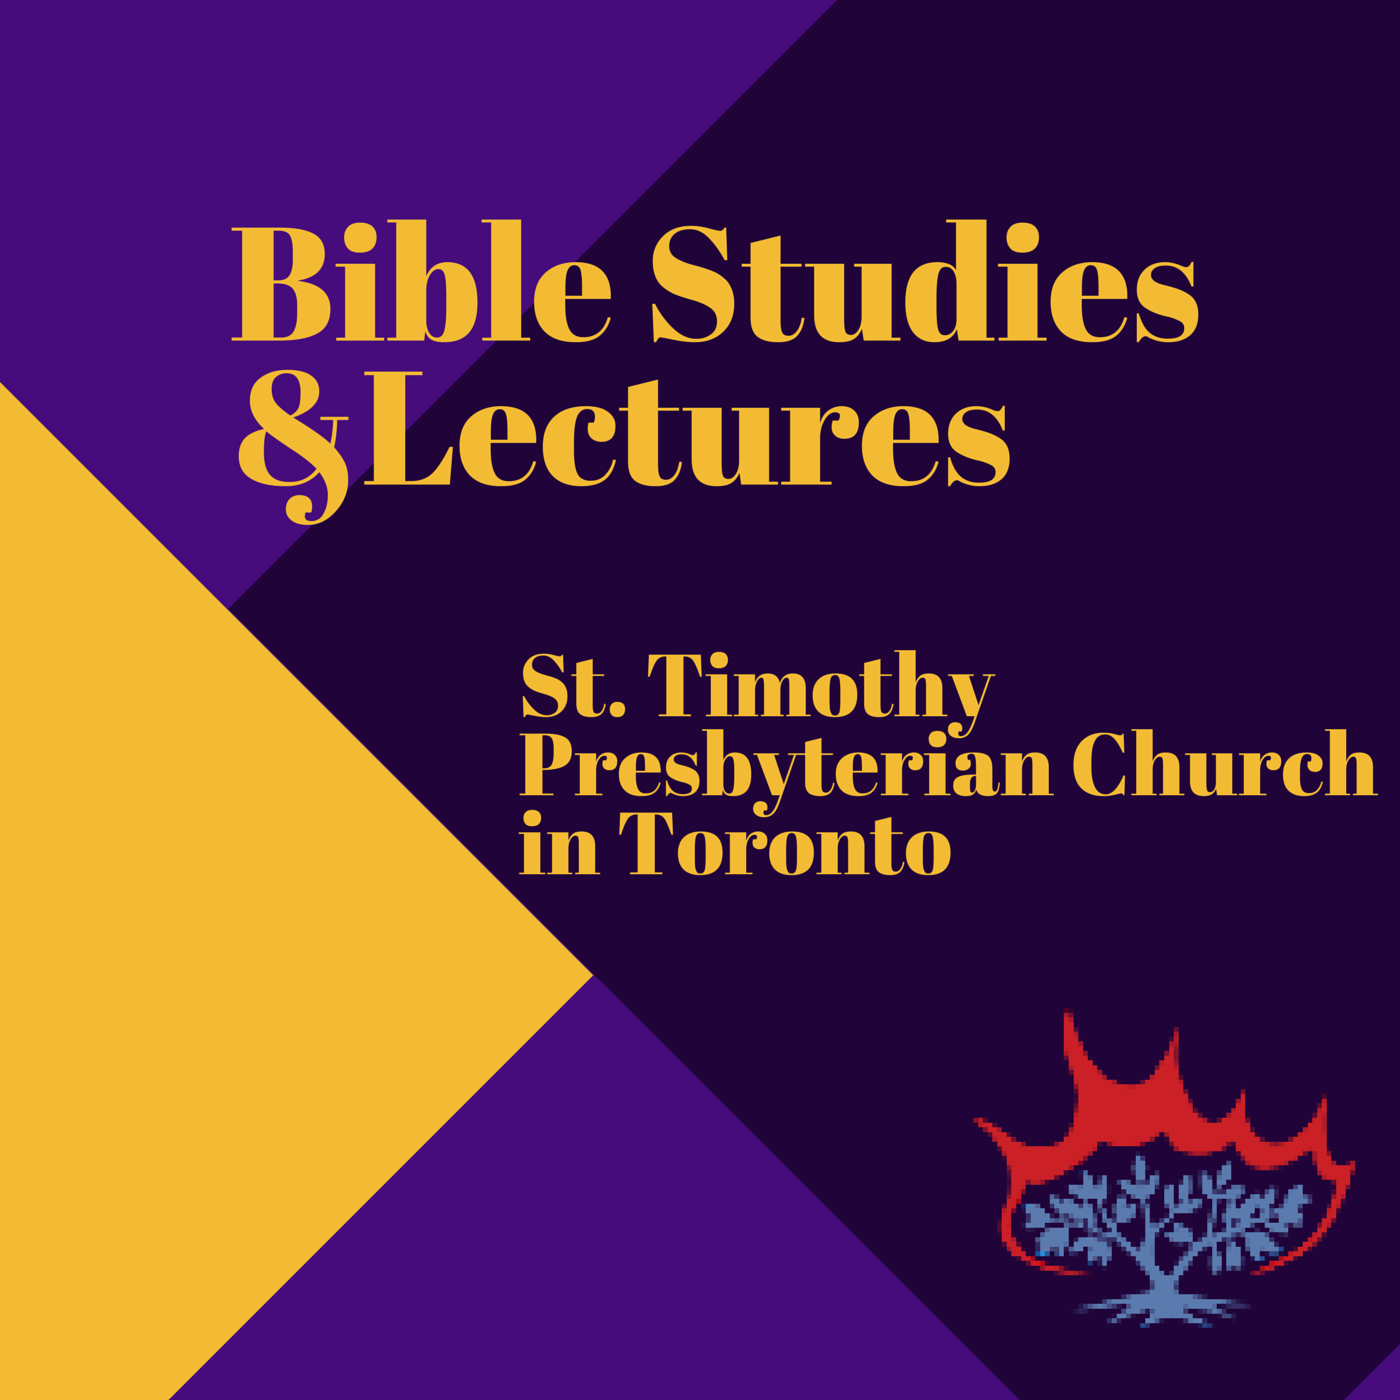 St Timothy Presbyterian Church in Toronto: Bible Studies and Lectures